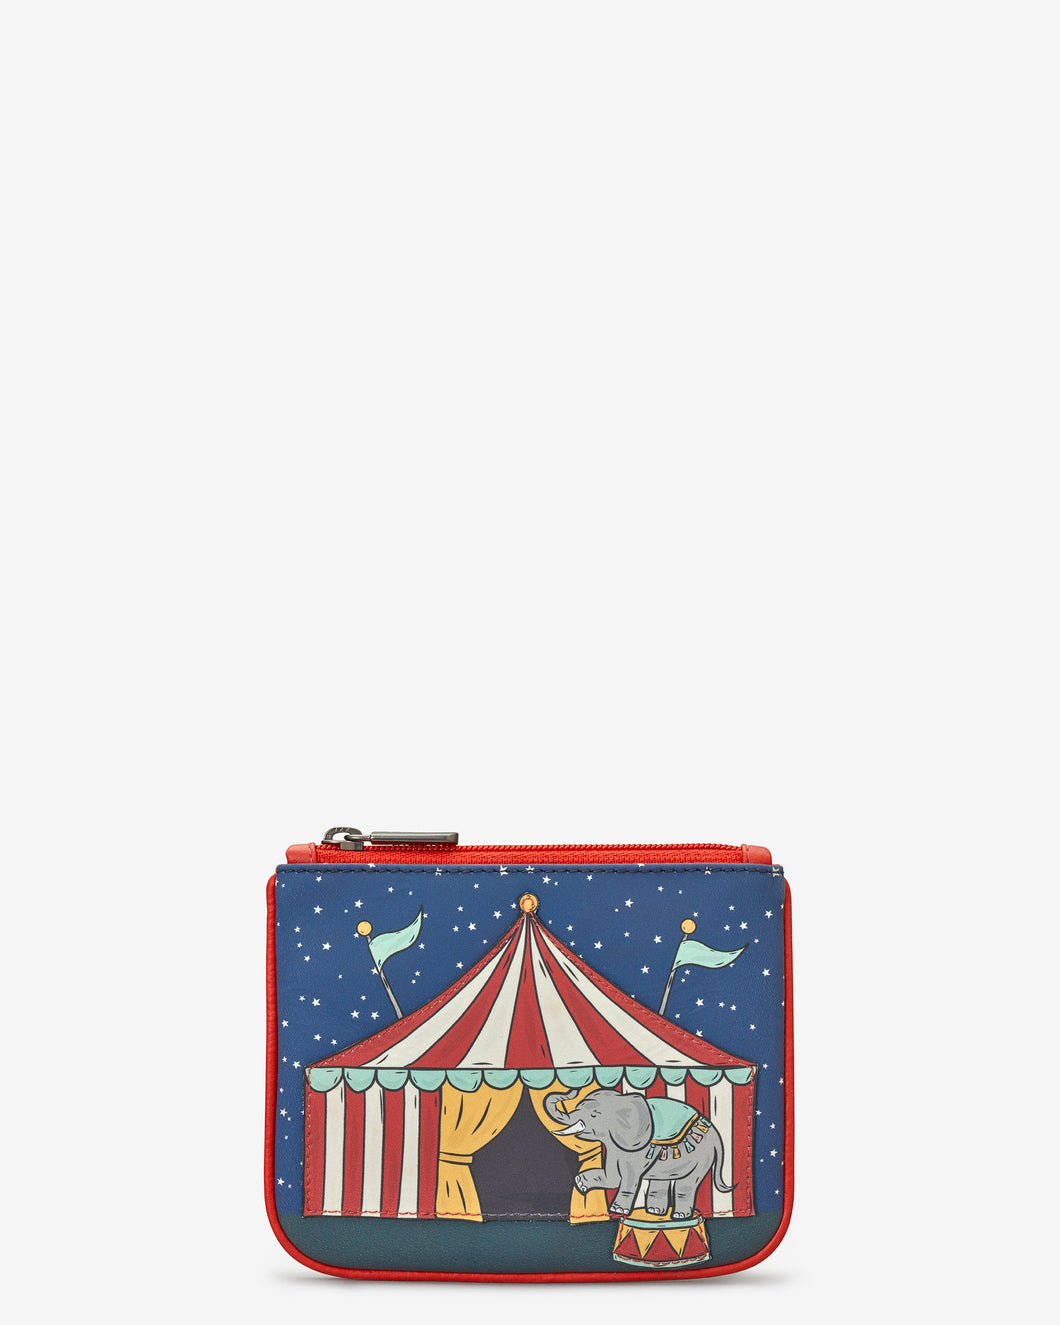 Circus Tent Zip Top Leather Purse - Bluebells of Bath